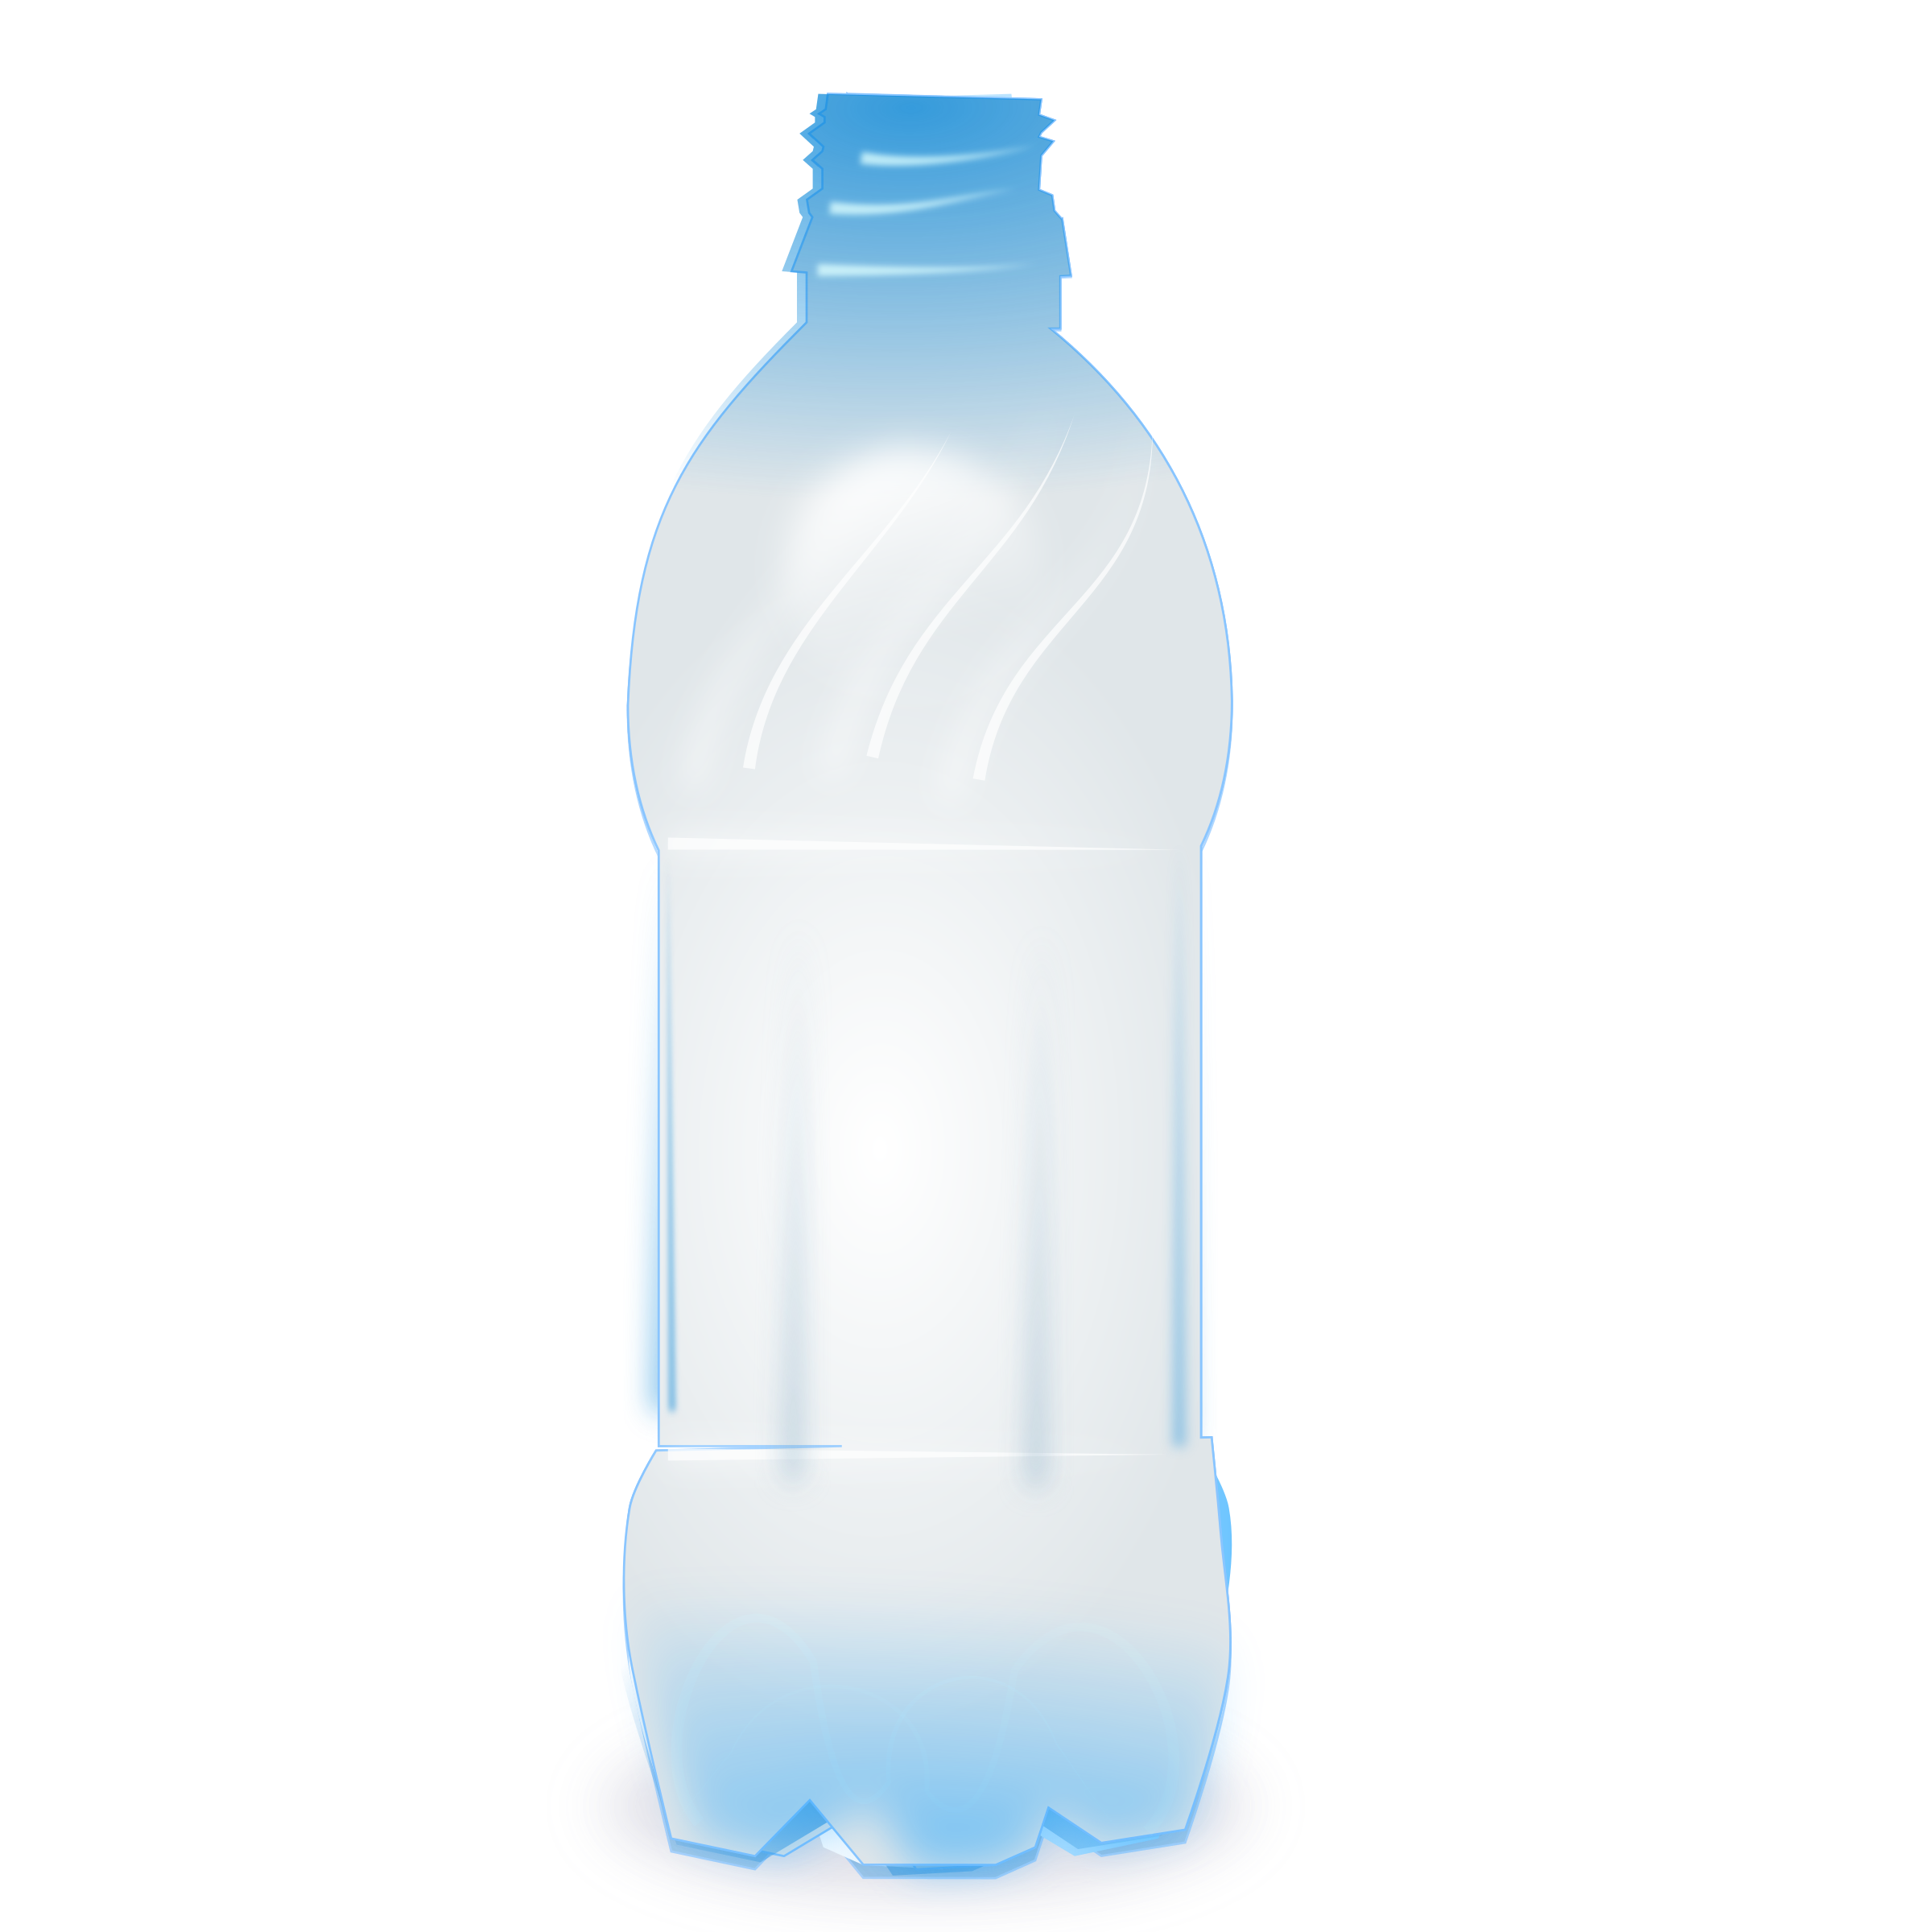 Pet bottle by netalloy